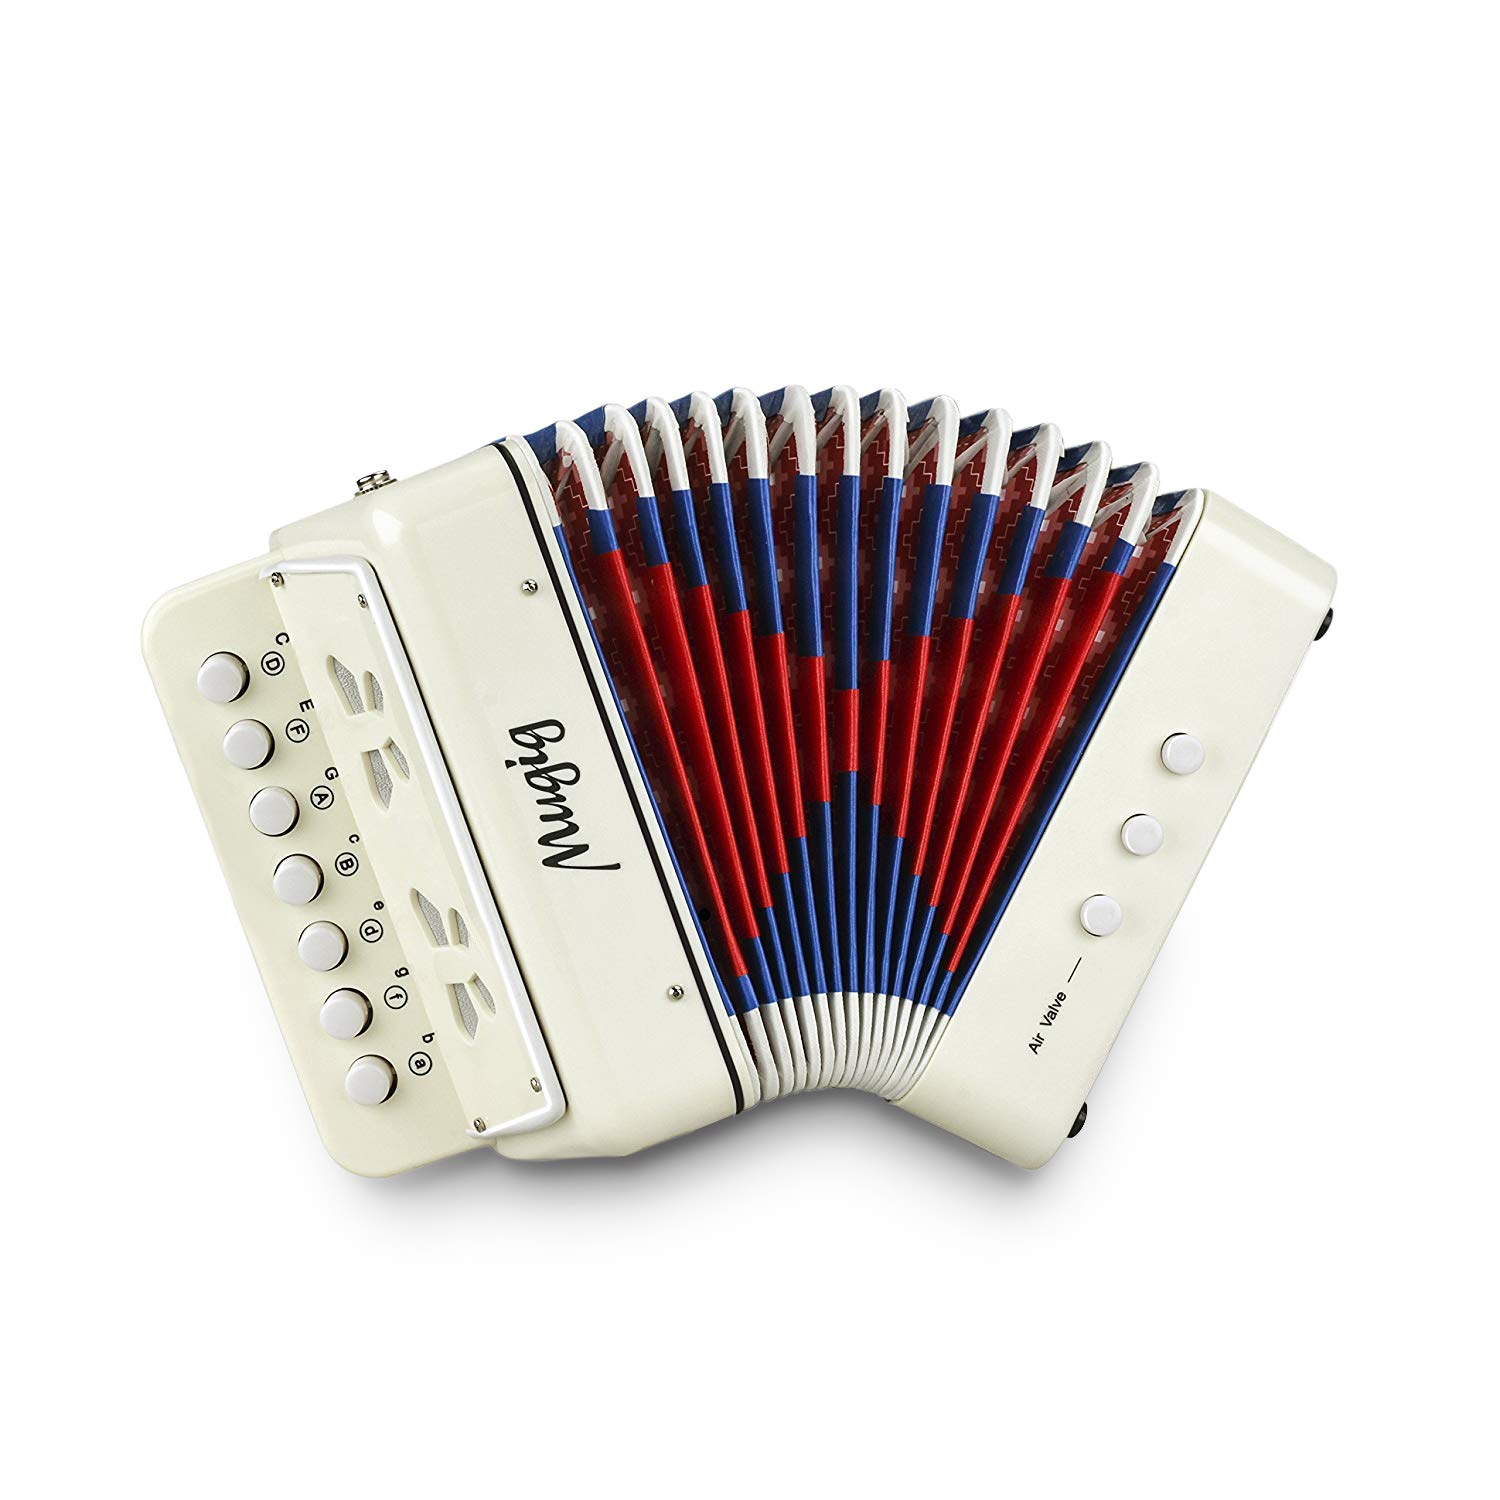 Mugig Accordion, 10 Keys Control